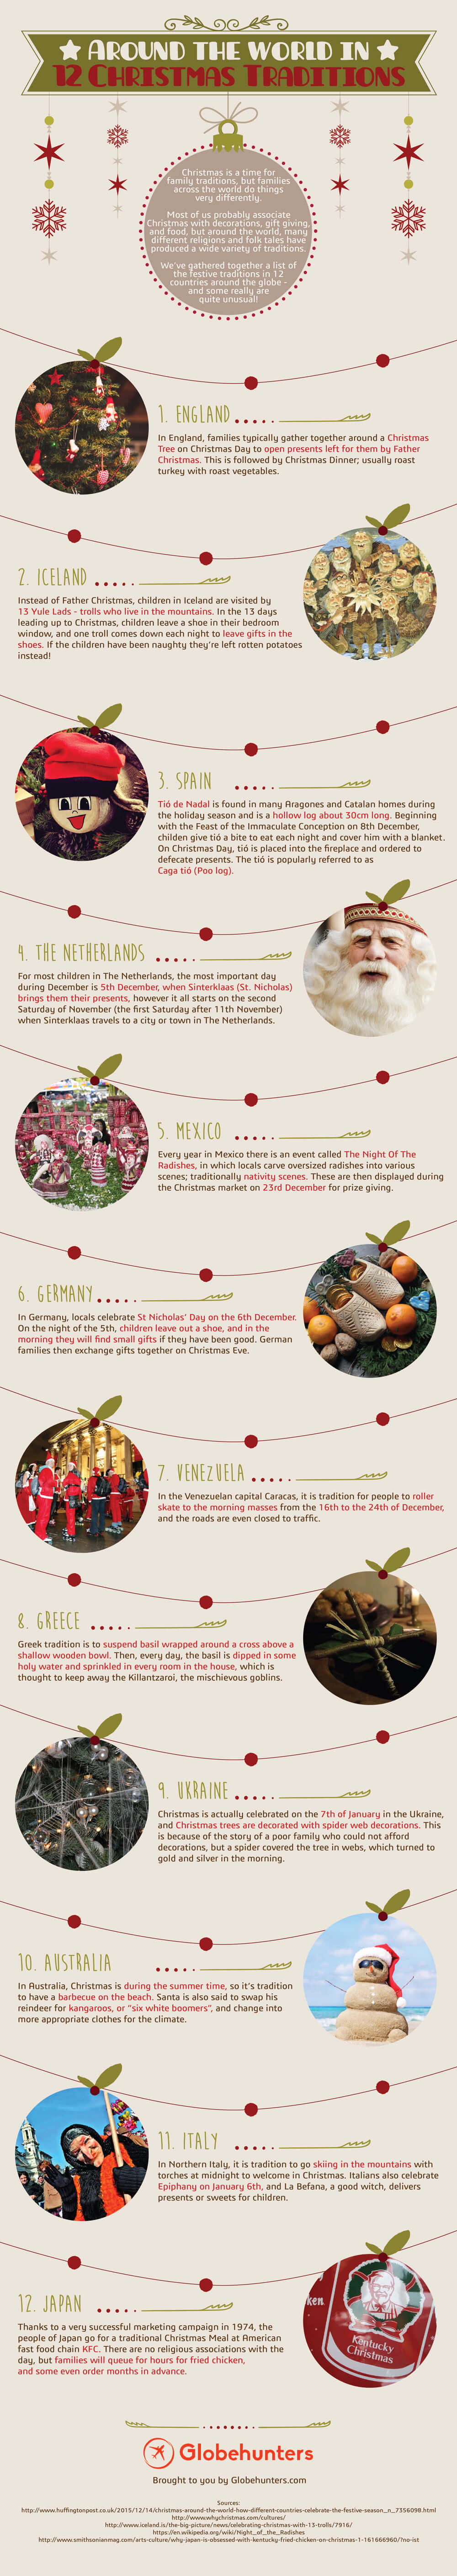 Around The World In 12 Christmas Traditions.jpg